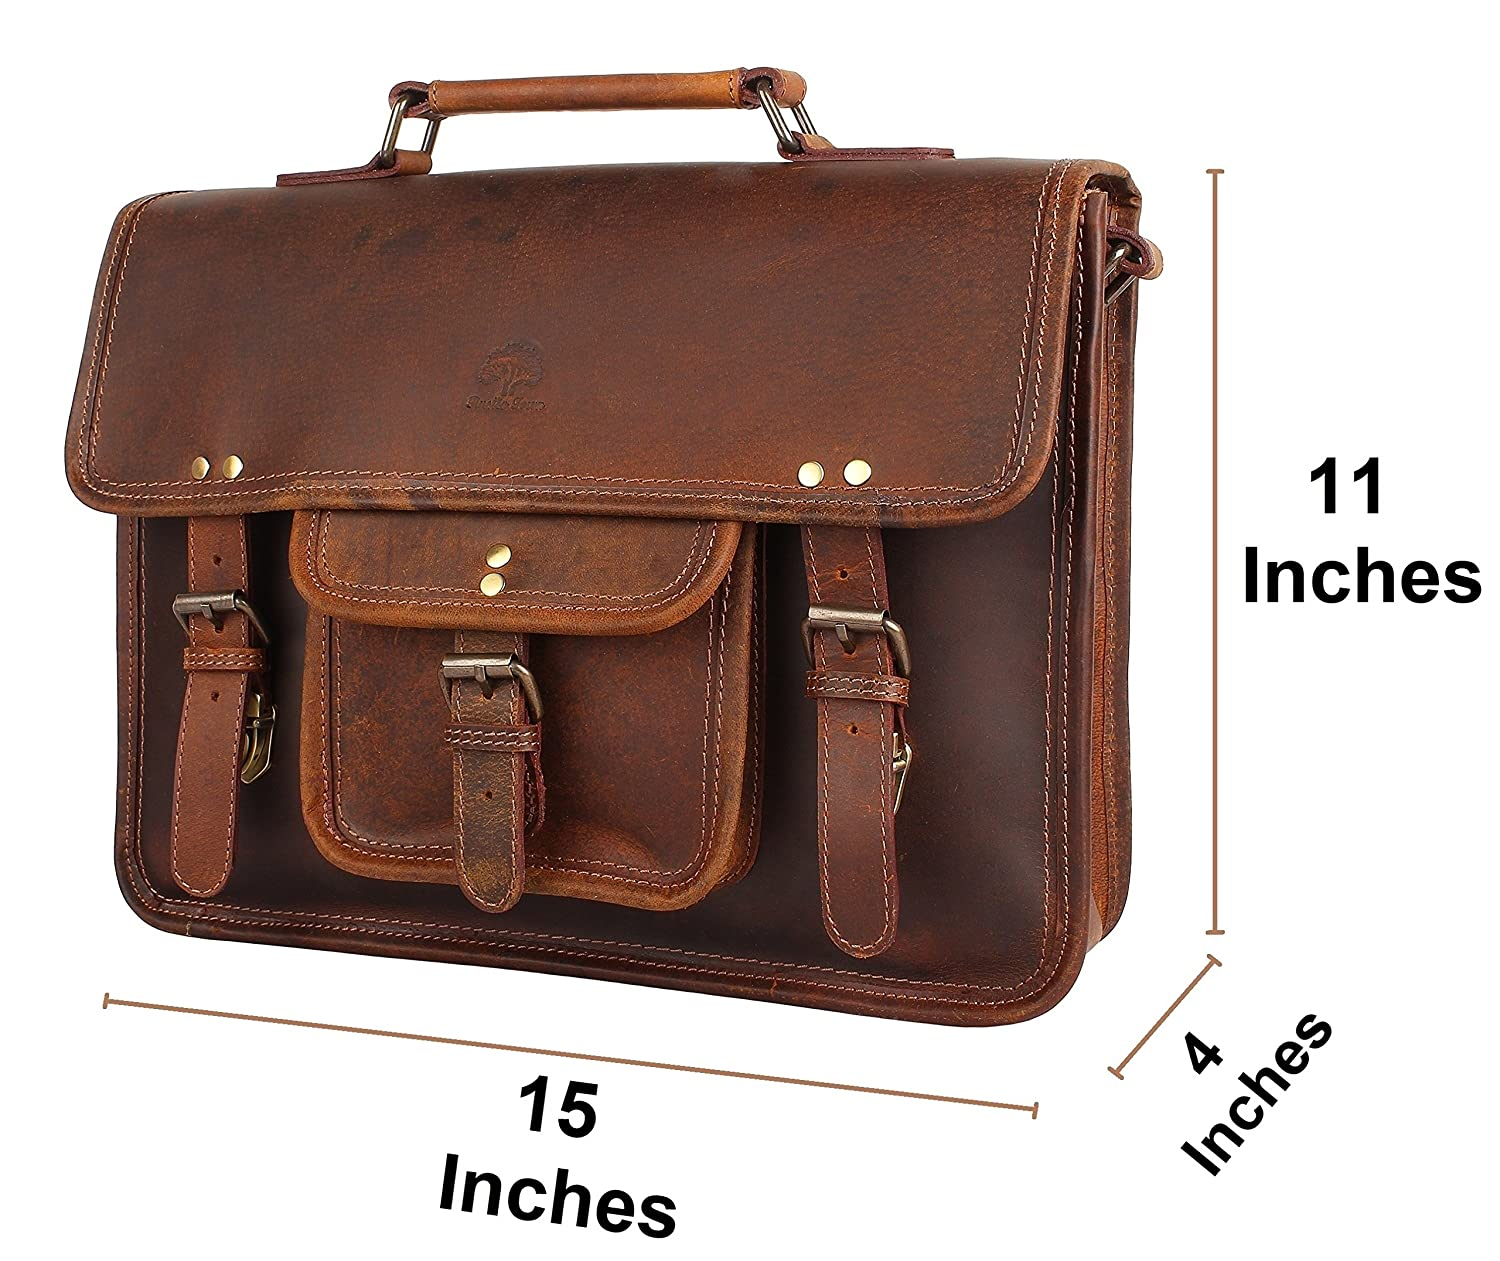 6c86bfc10fda 15 Inch Leather Vintage Rustic Crossbody Messenger Satchel Bag Gift Men  Women ~ Business Work Briefcase Carry Laptop Computer Book Handmade Rugged  & ...